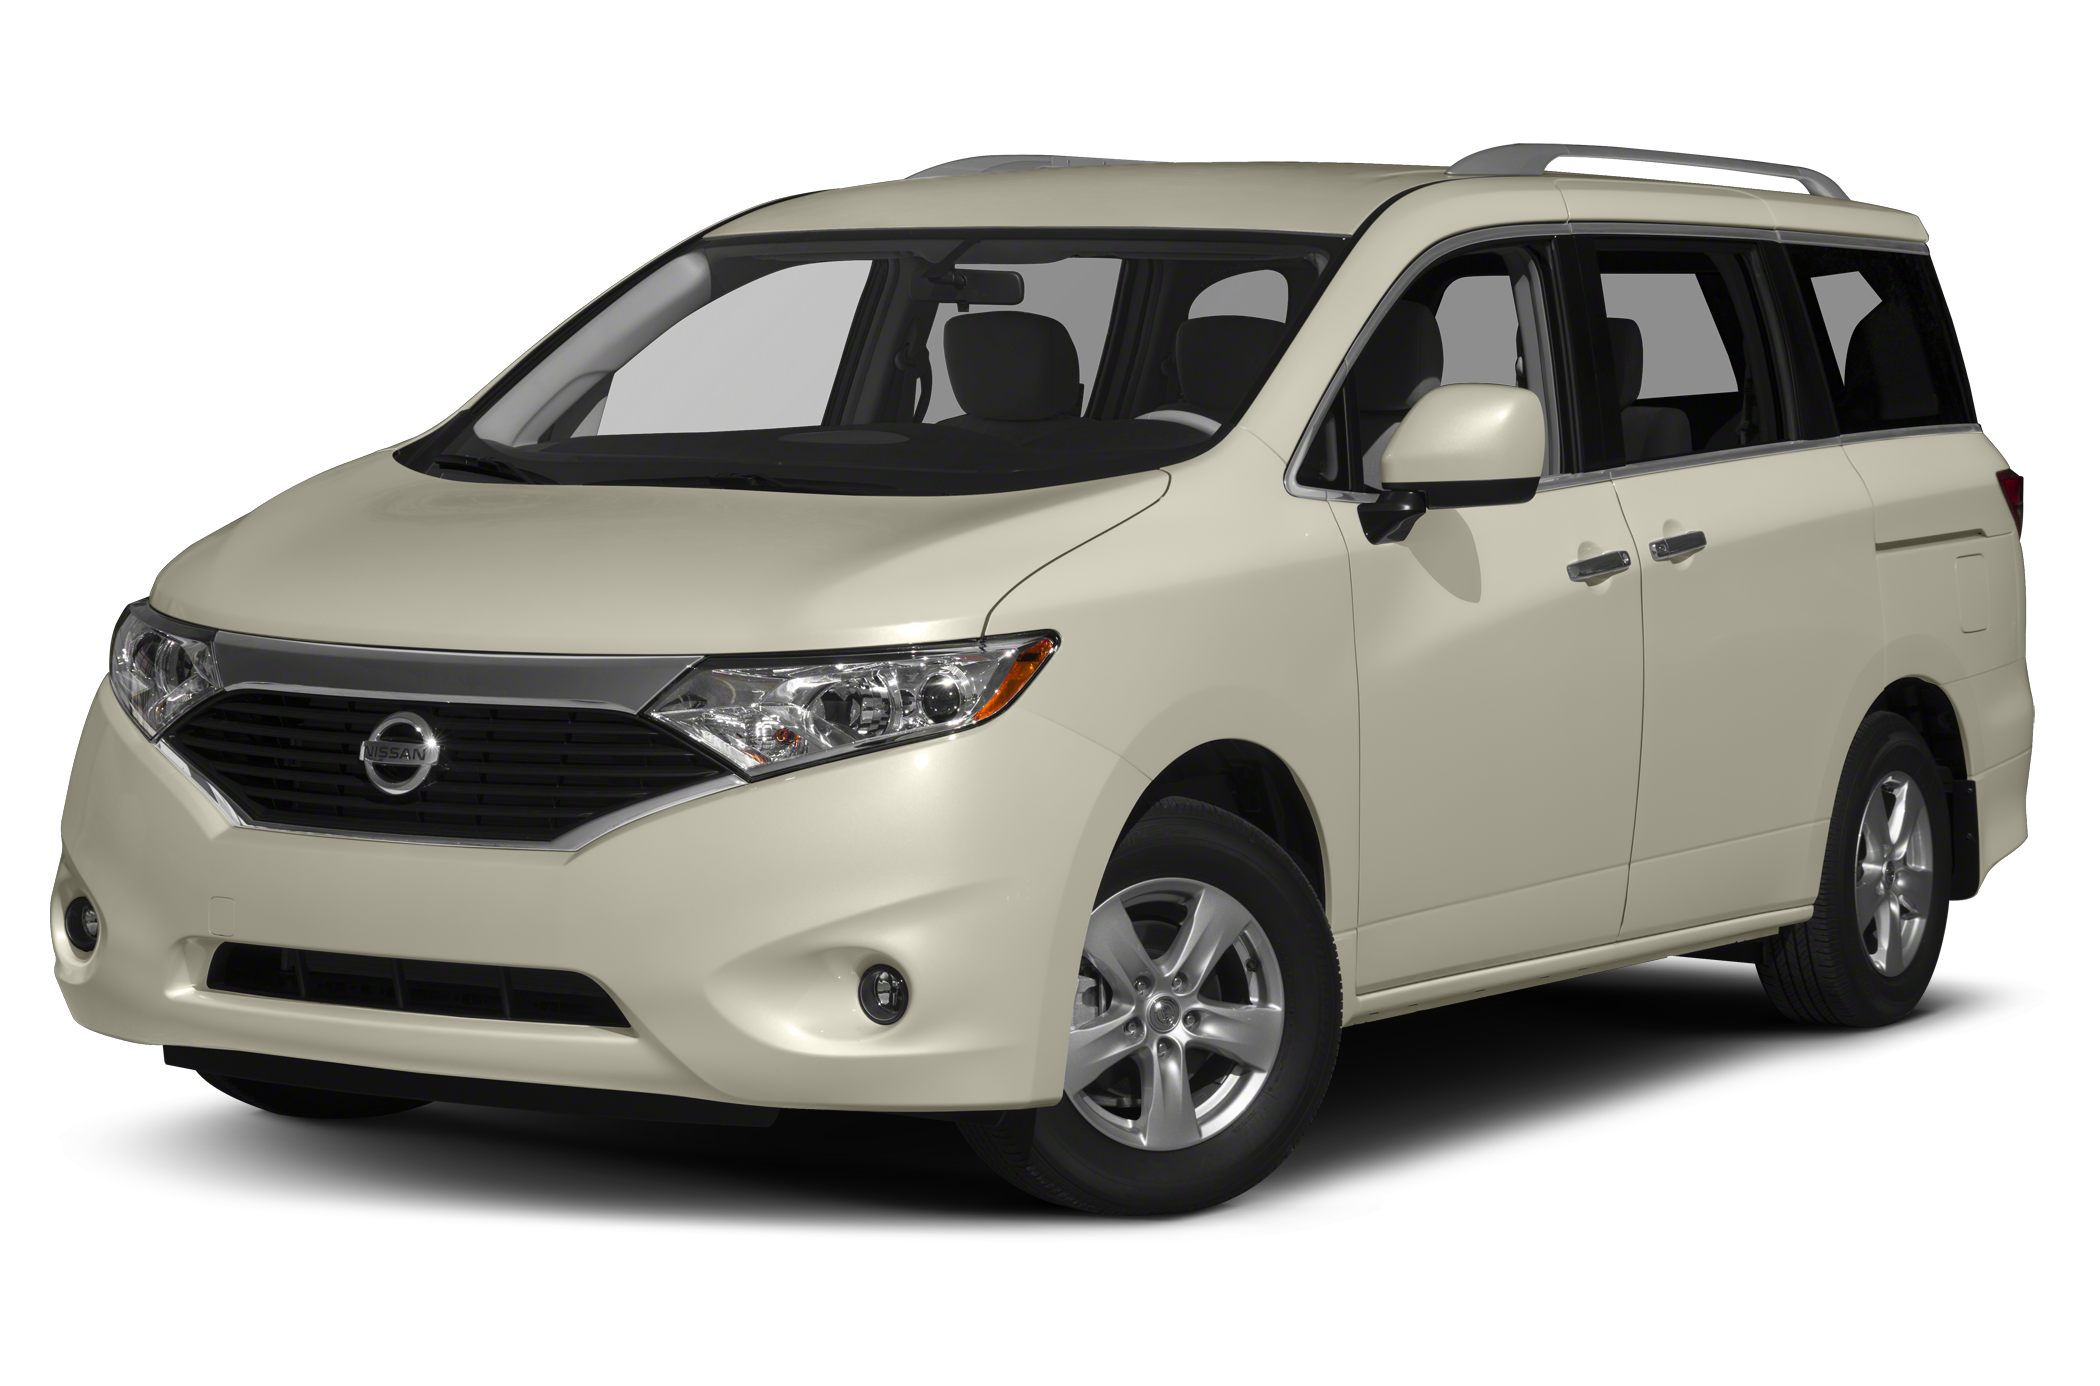 Nissan Quest News, Photos and Buying Information - Autoblog  Nissan Quest Ne...